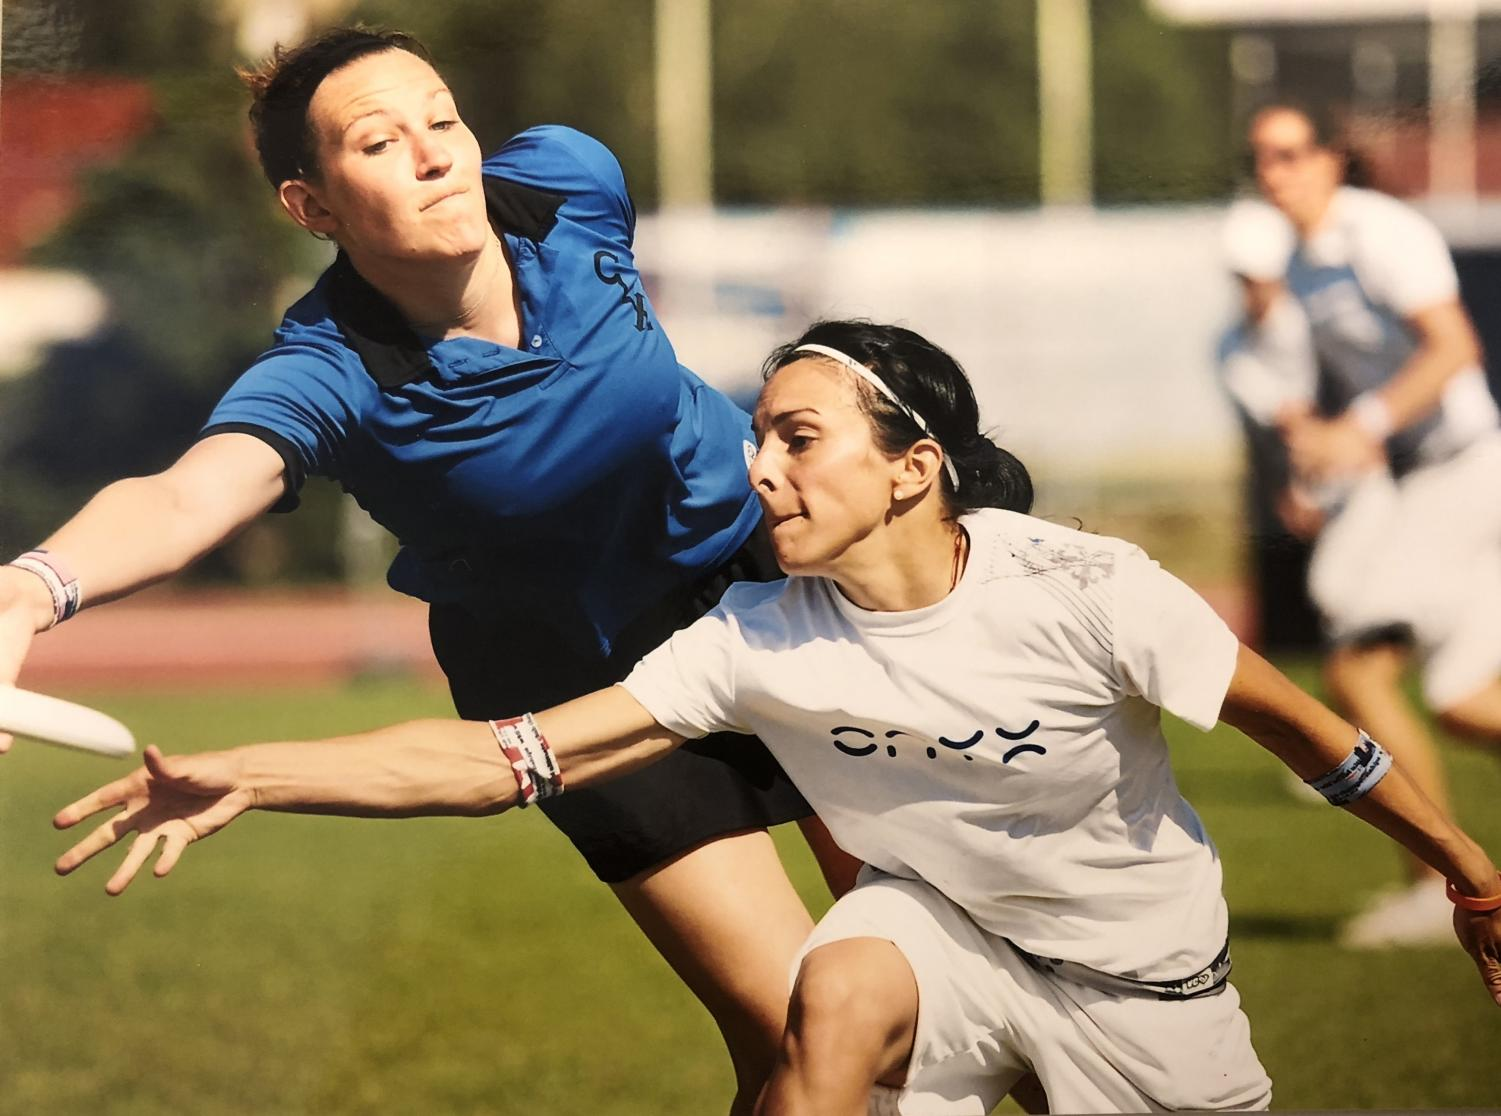 Lyons (left) dives for the disc during an Ultimate Frisbee tournament. Her team, called the Chad Larson Experience, took first out of 40 teams at the 2010 World Ultimate Club Championships in Prague.